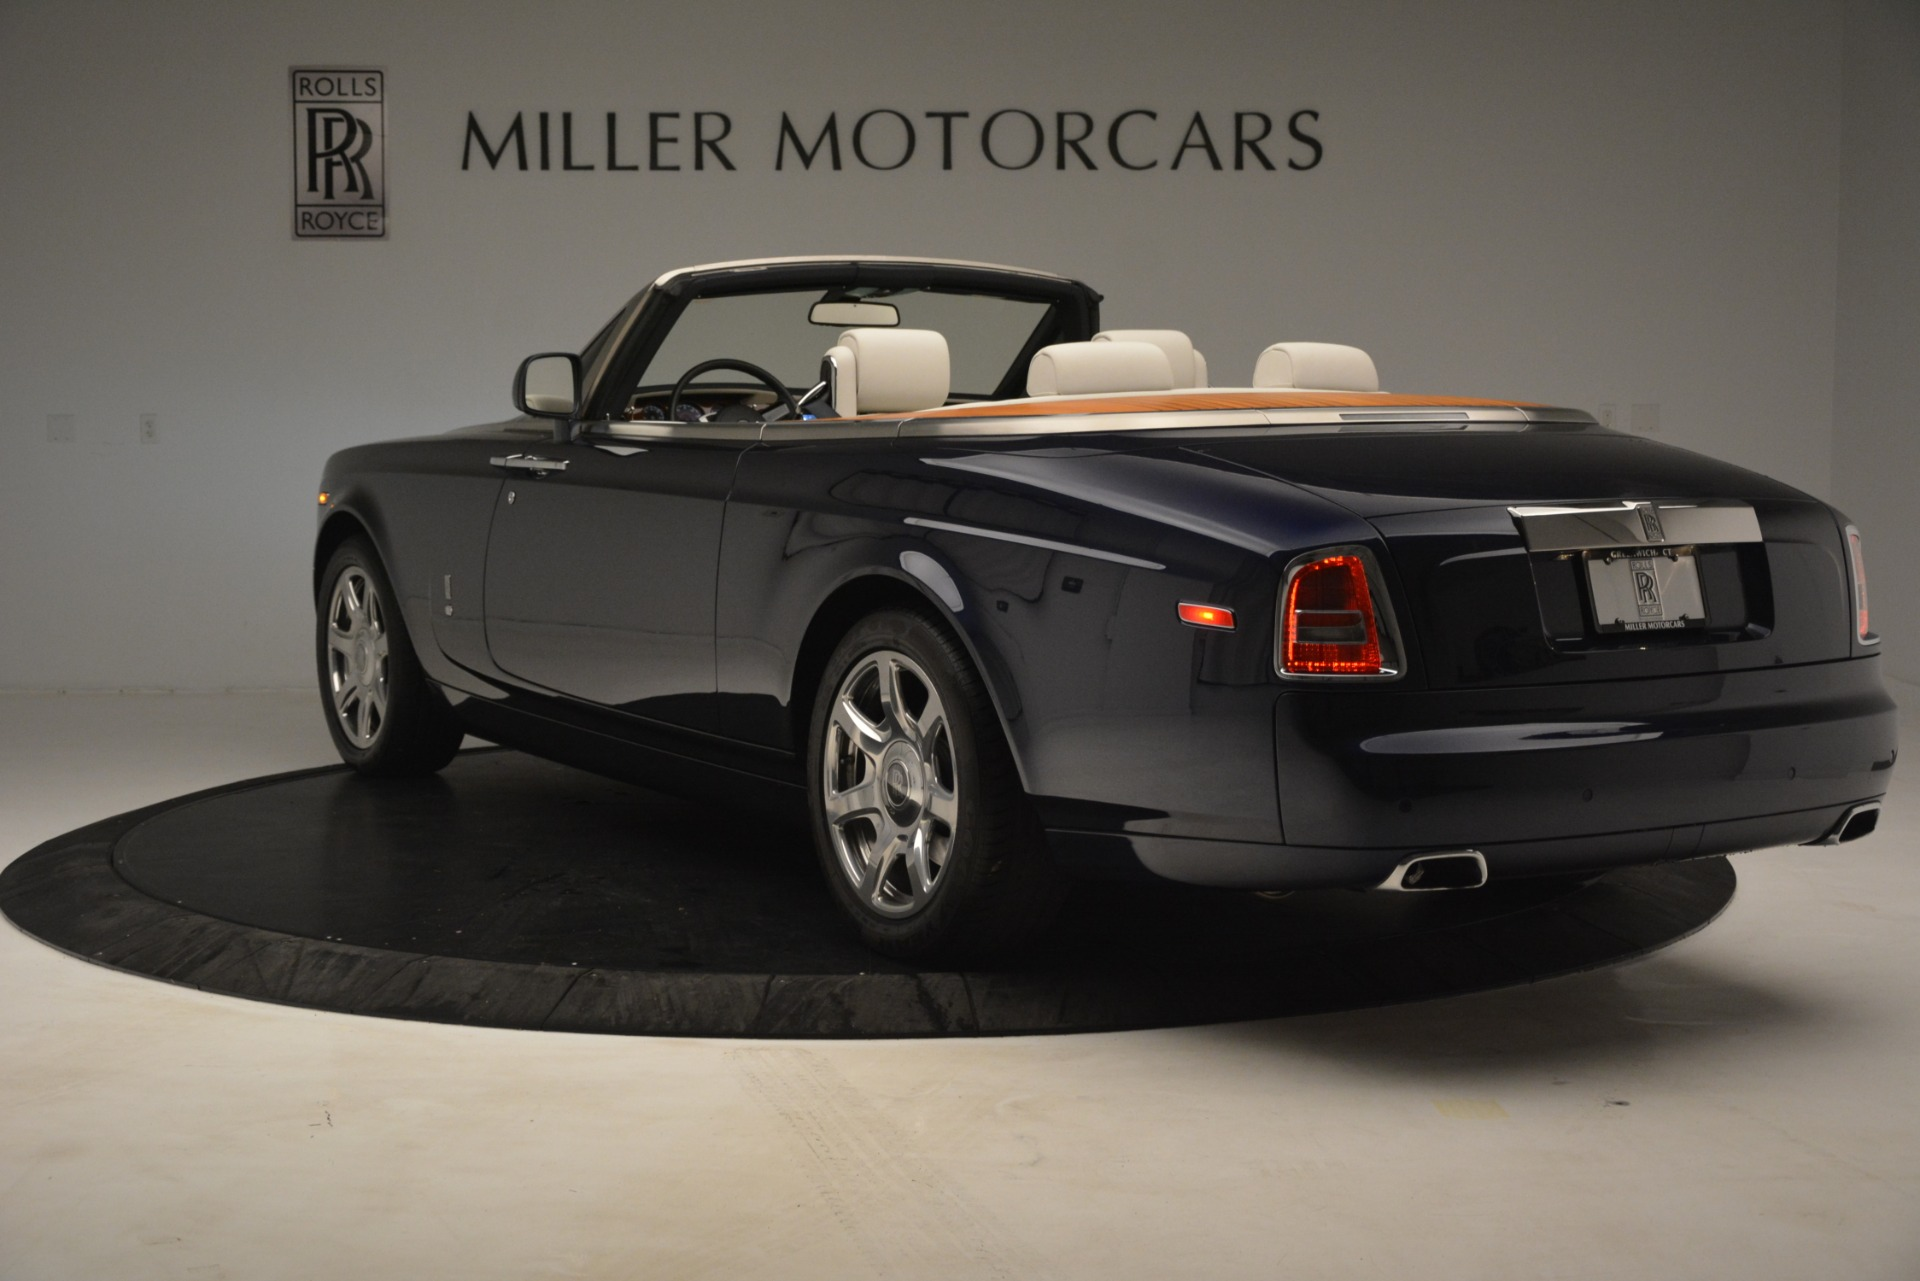 Used 2013 Rolls-Royce Phantom Drophead Coupe  For Sale In Greenwich, CT 2999_p8